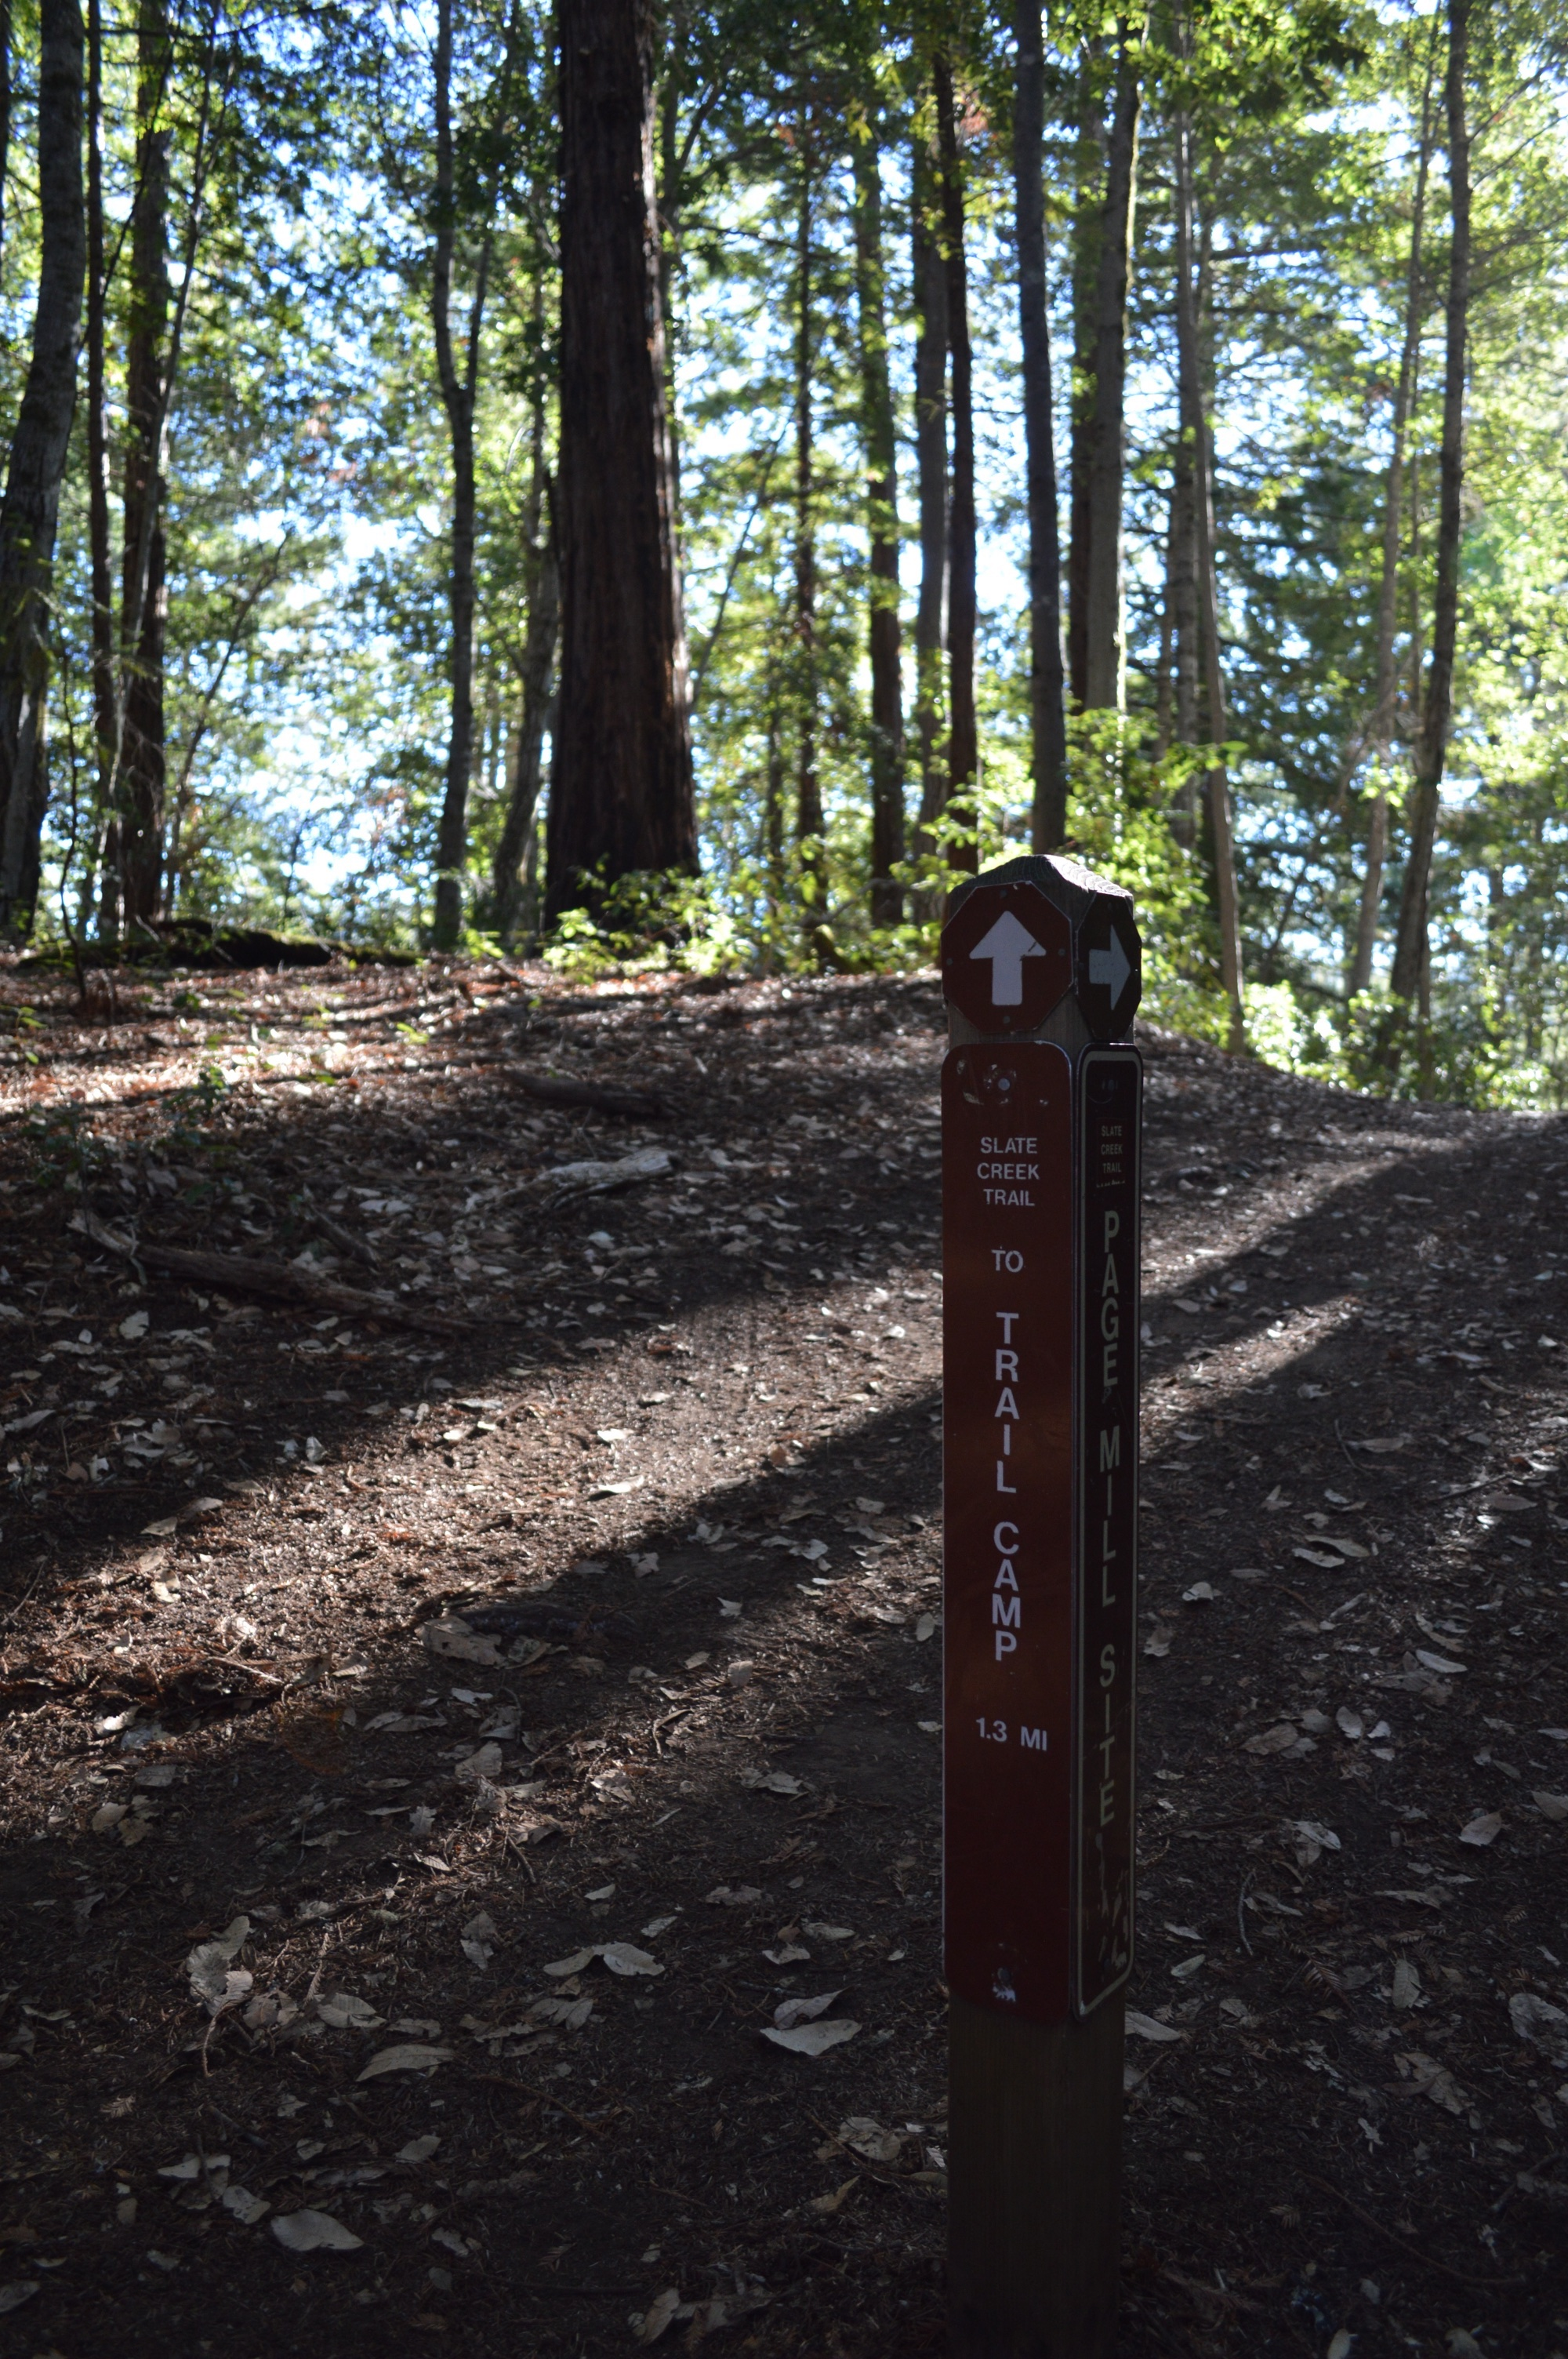 Image from Portola Redwoods SP